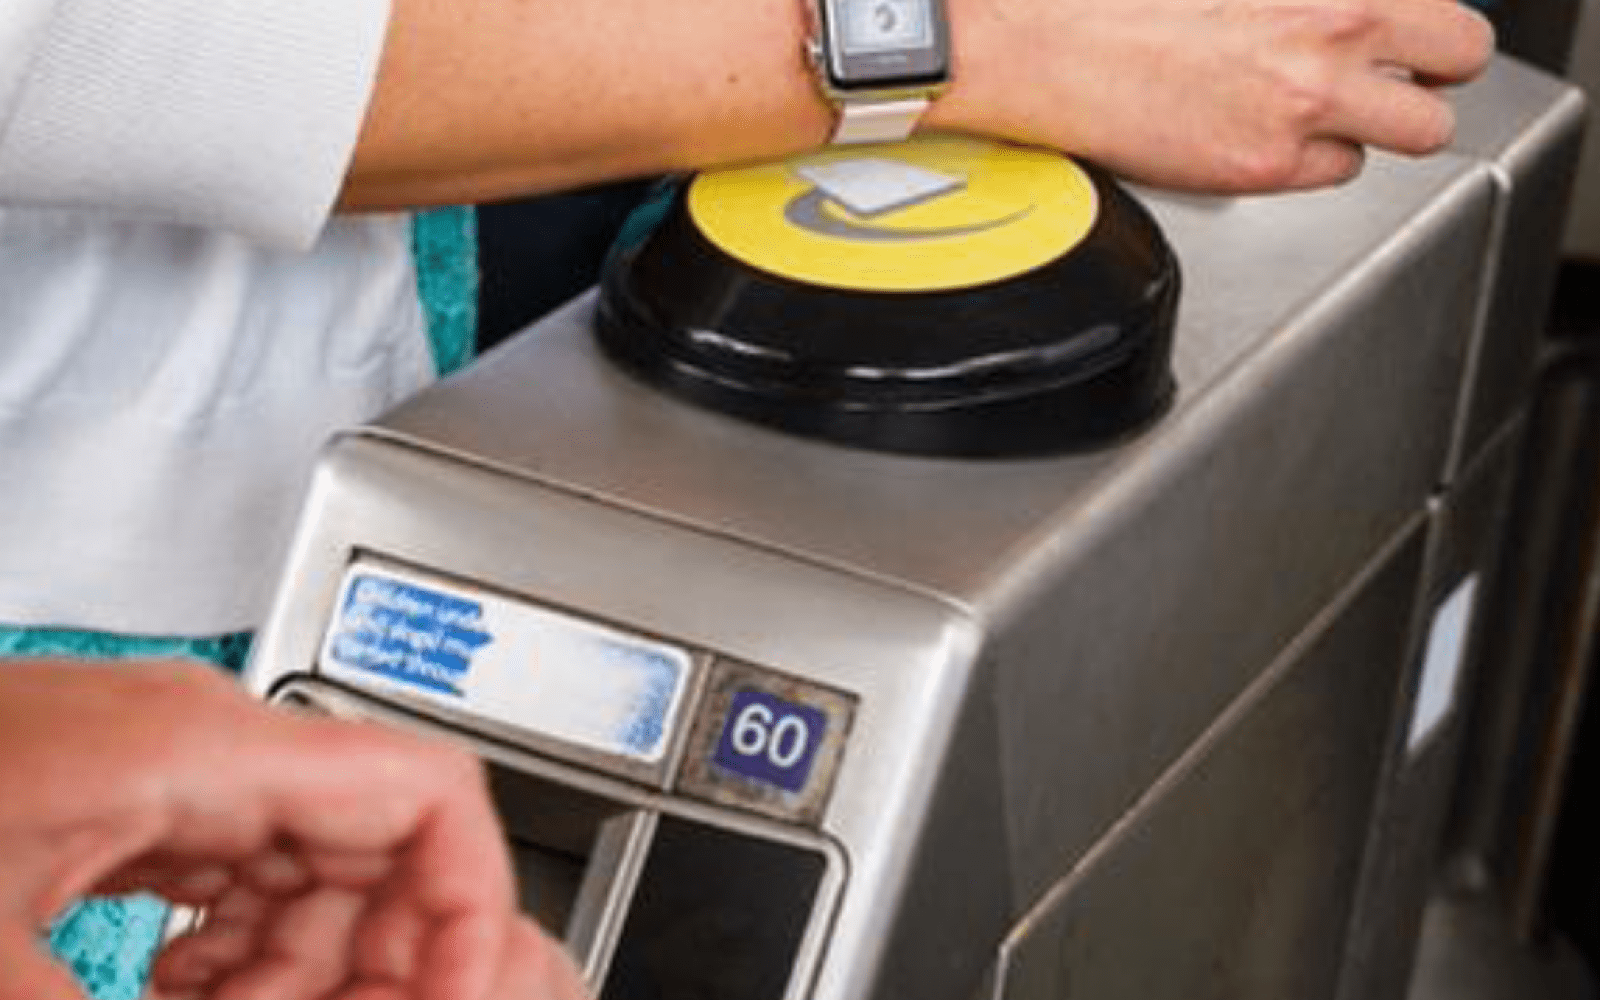 Apple Pay's UK launch leading to issues, mistaken charges with the London Underground